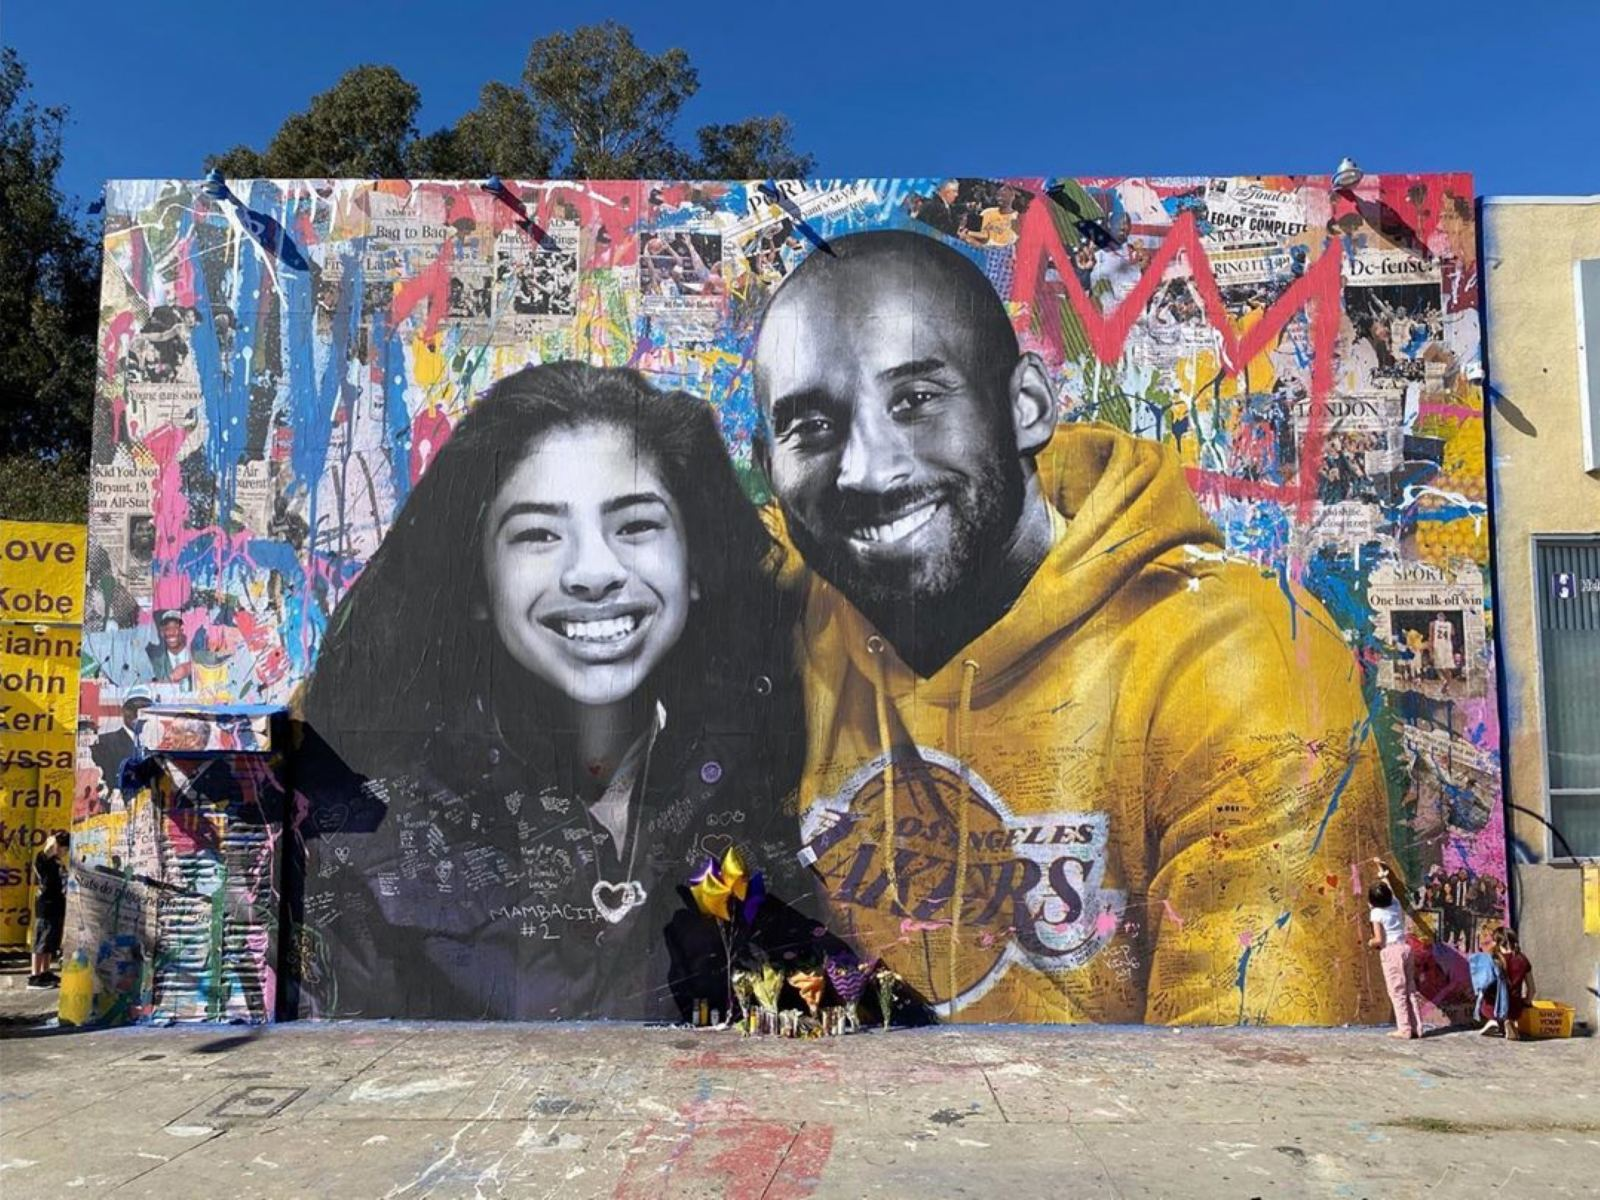 Kobe and Gianna Bryant mural by Mr. Brainwash